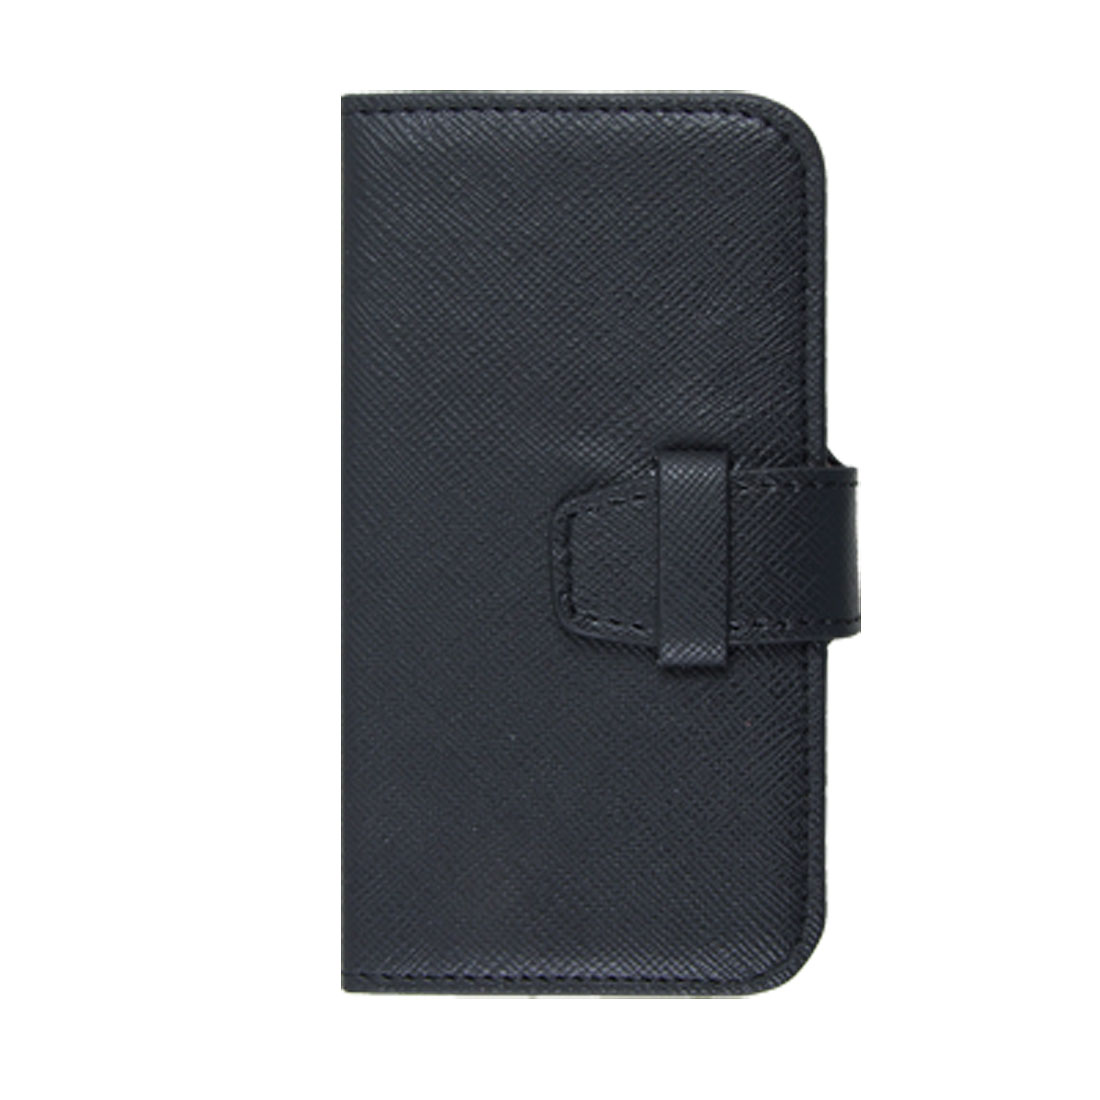 Horizontal Black Faux Leather Pouch Holder Case for iPhone 4 4G